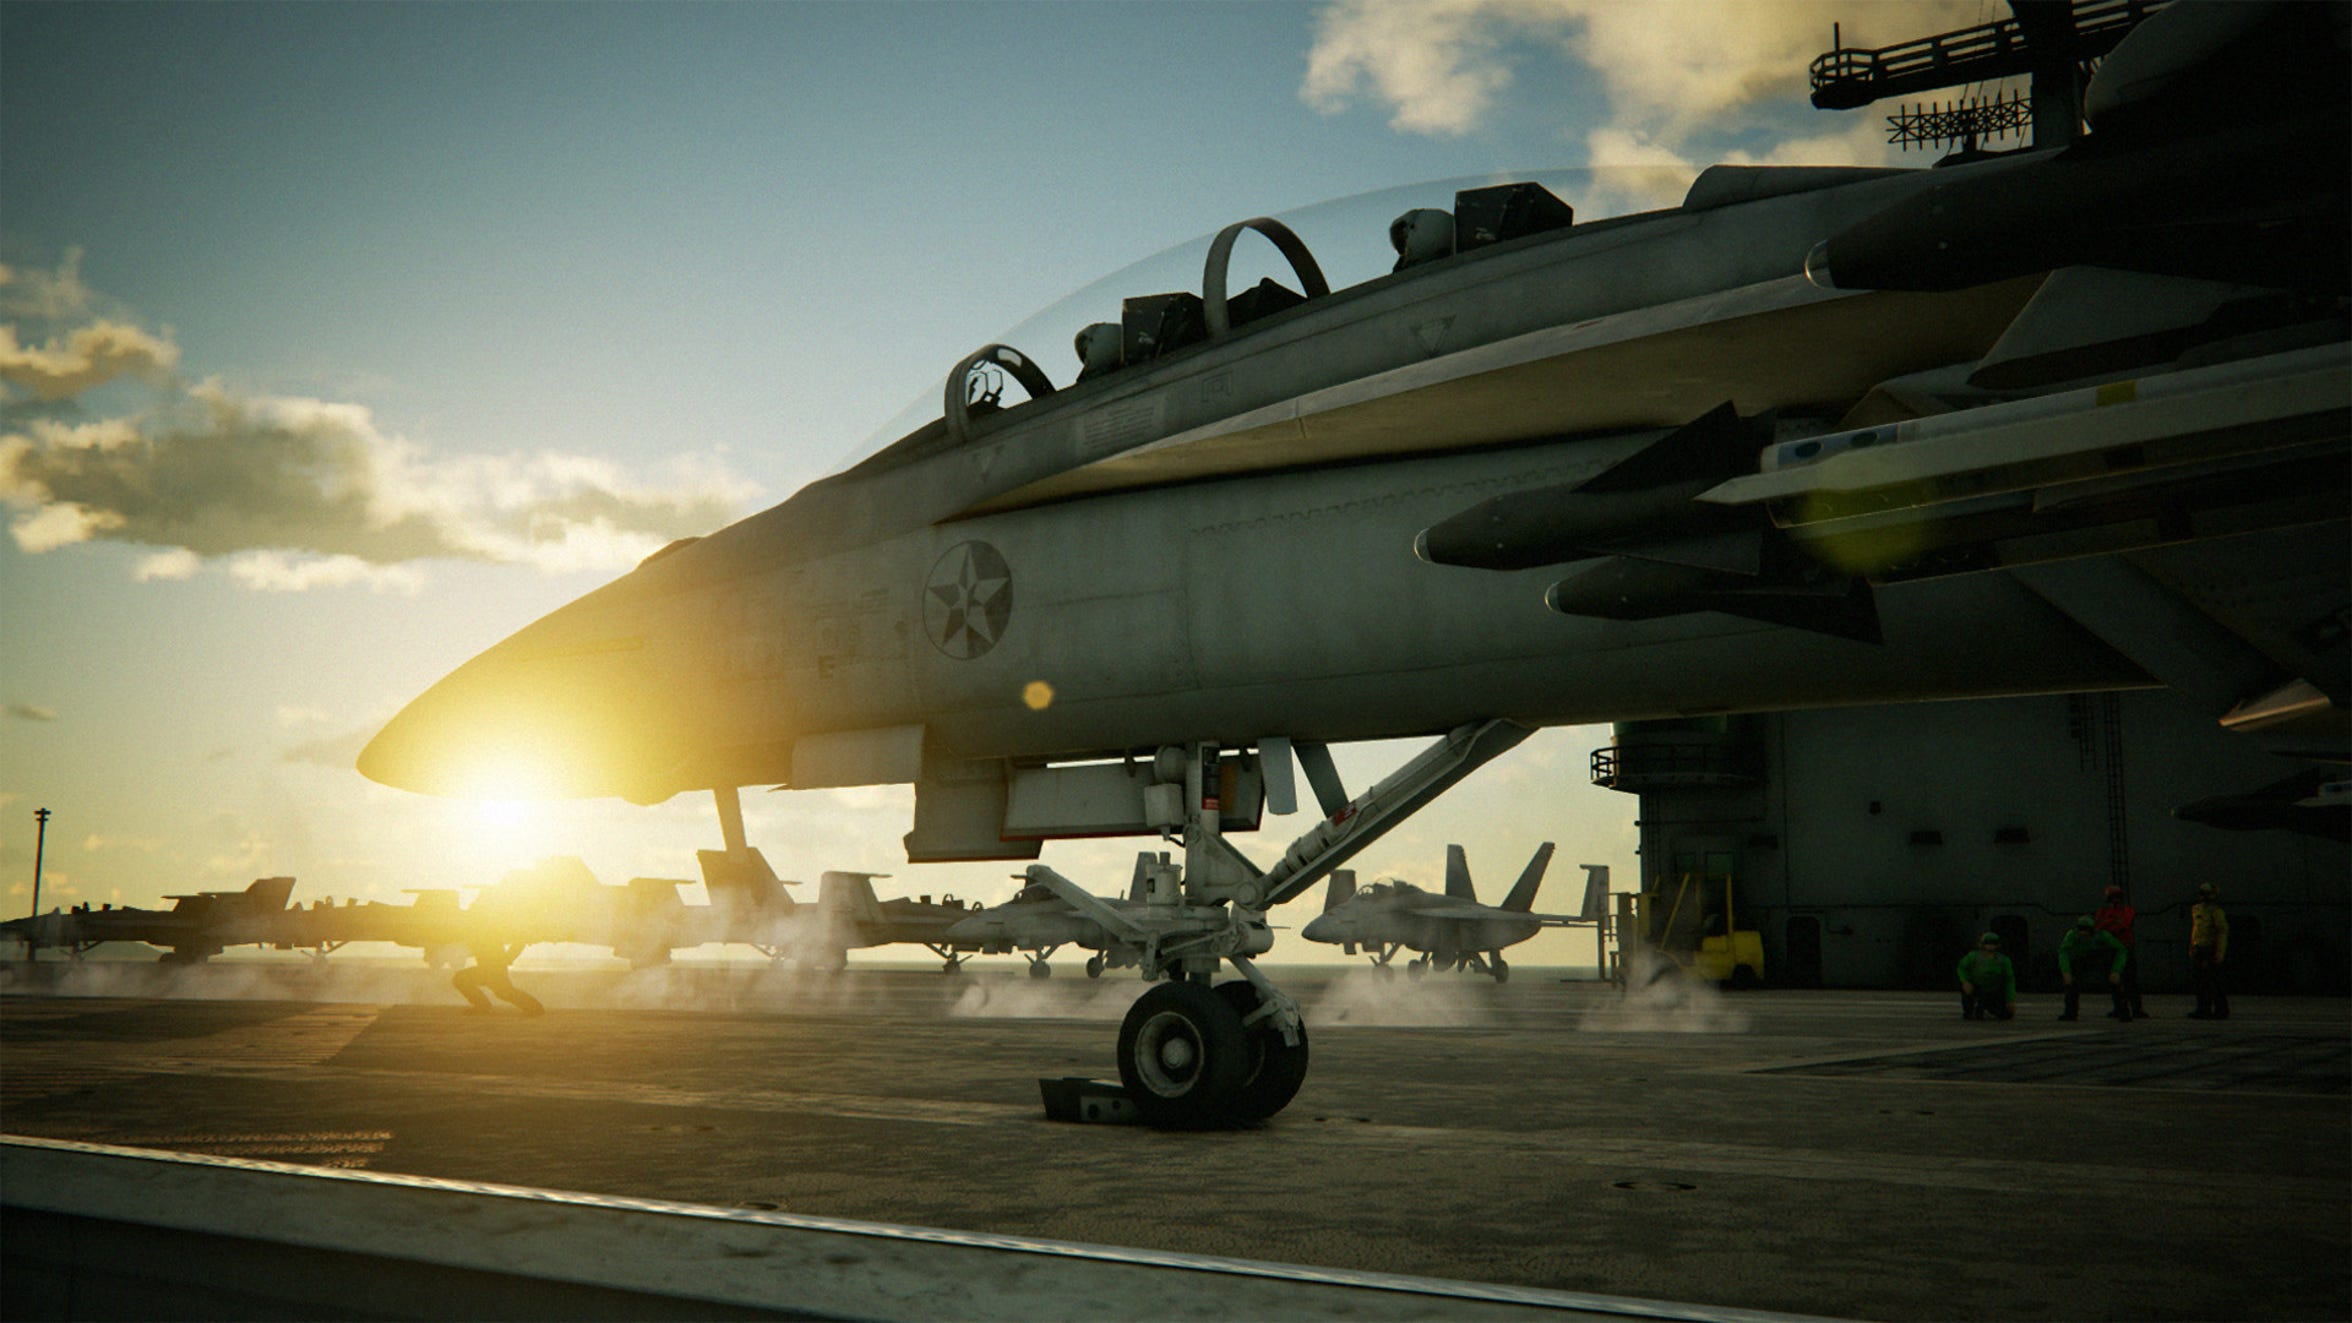 Ace Combat 7: Skies Unknown for PC, PS4 and Xbox One.